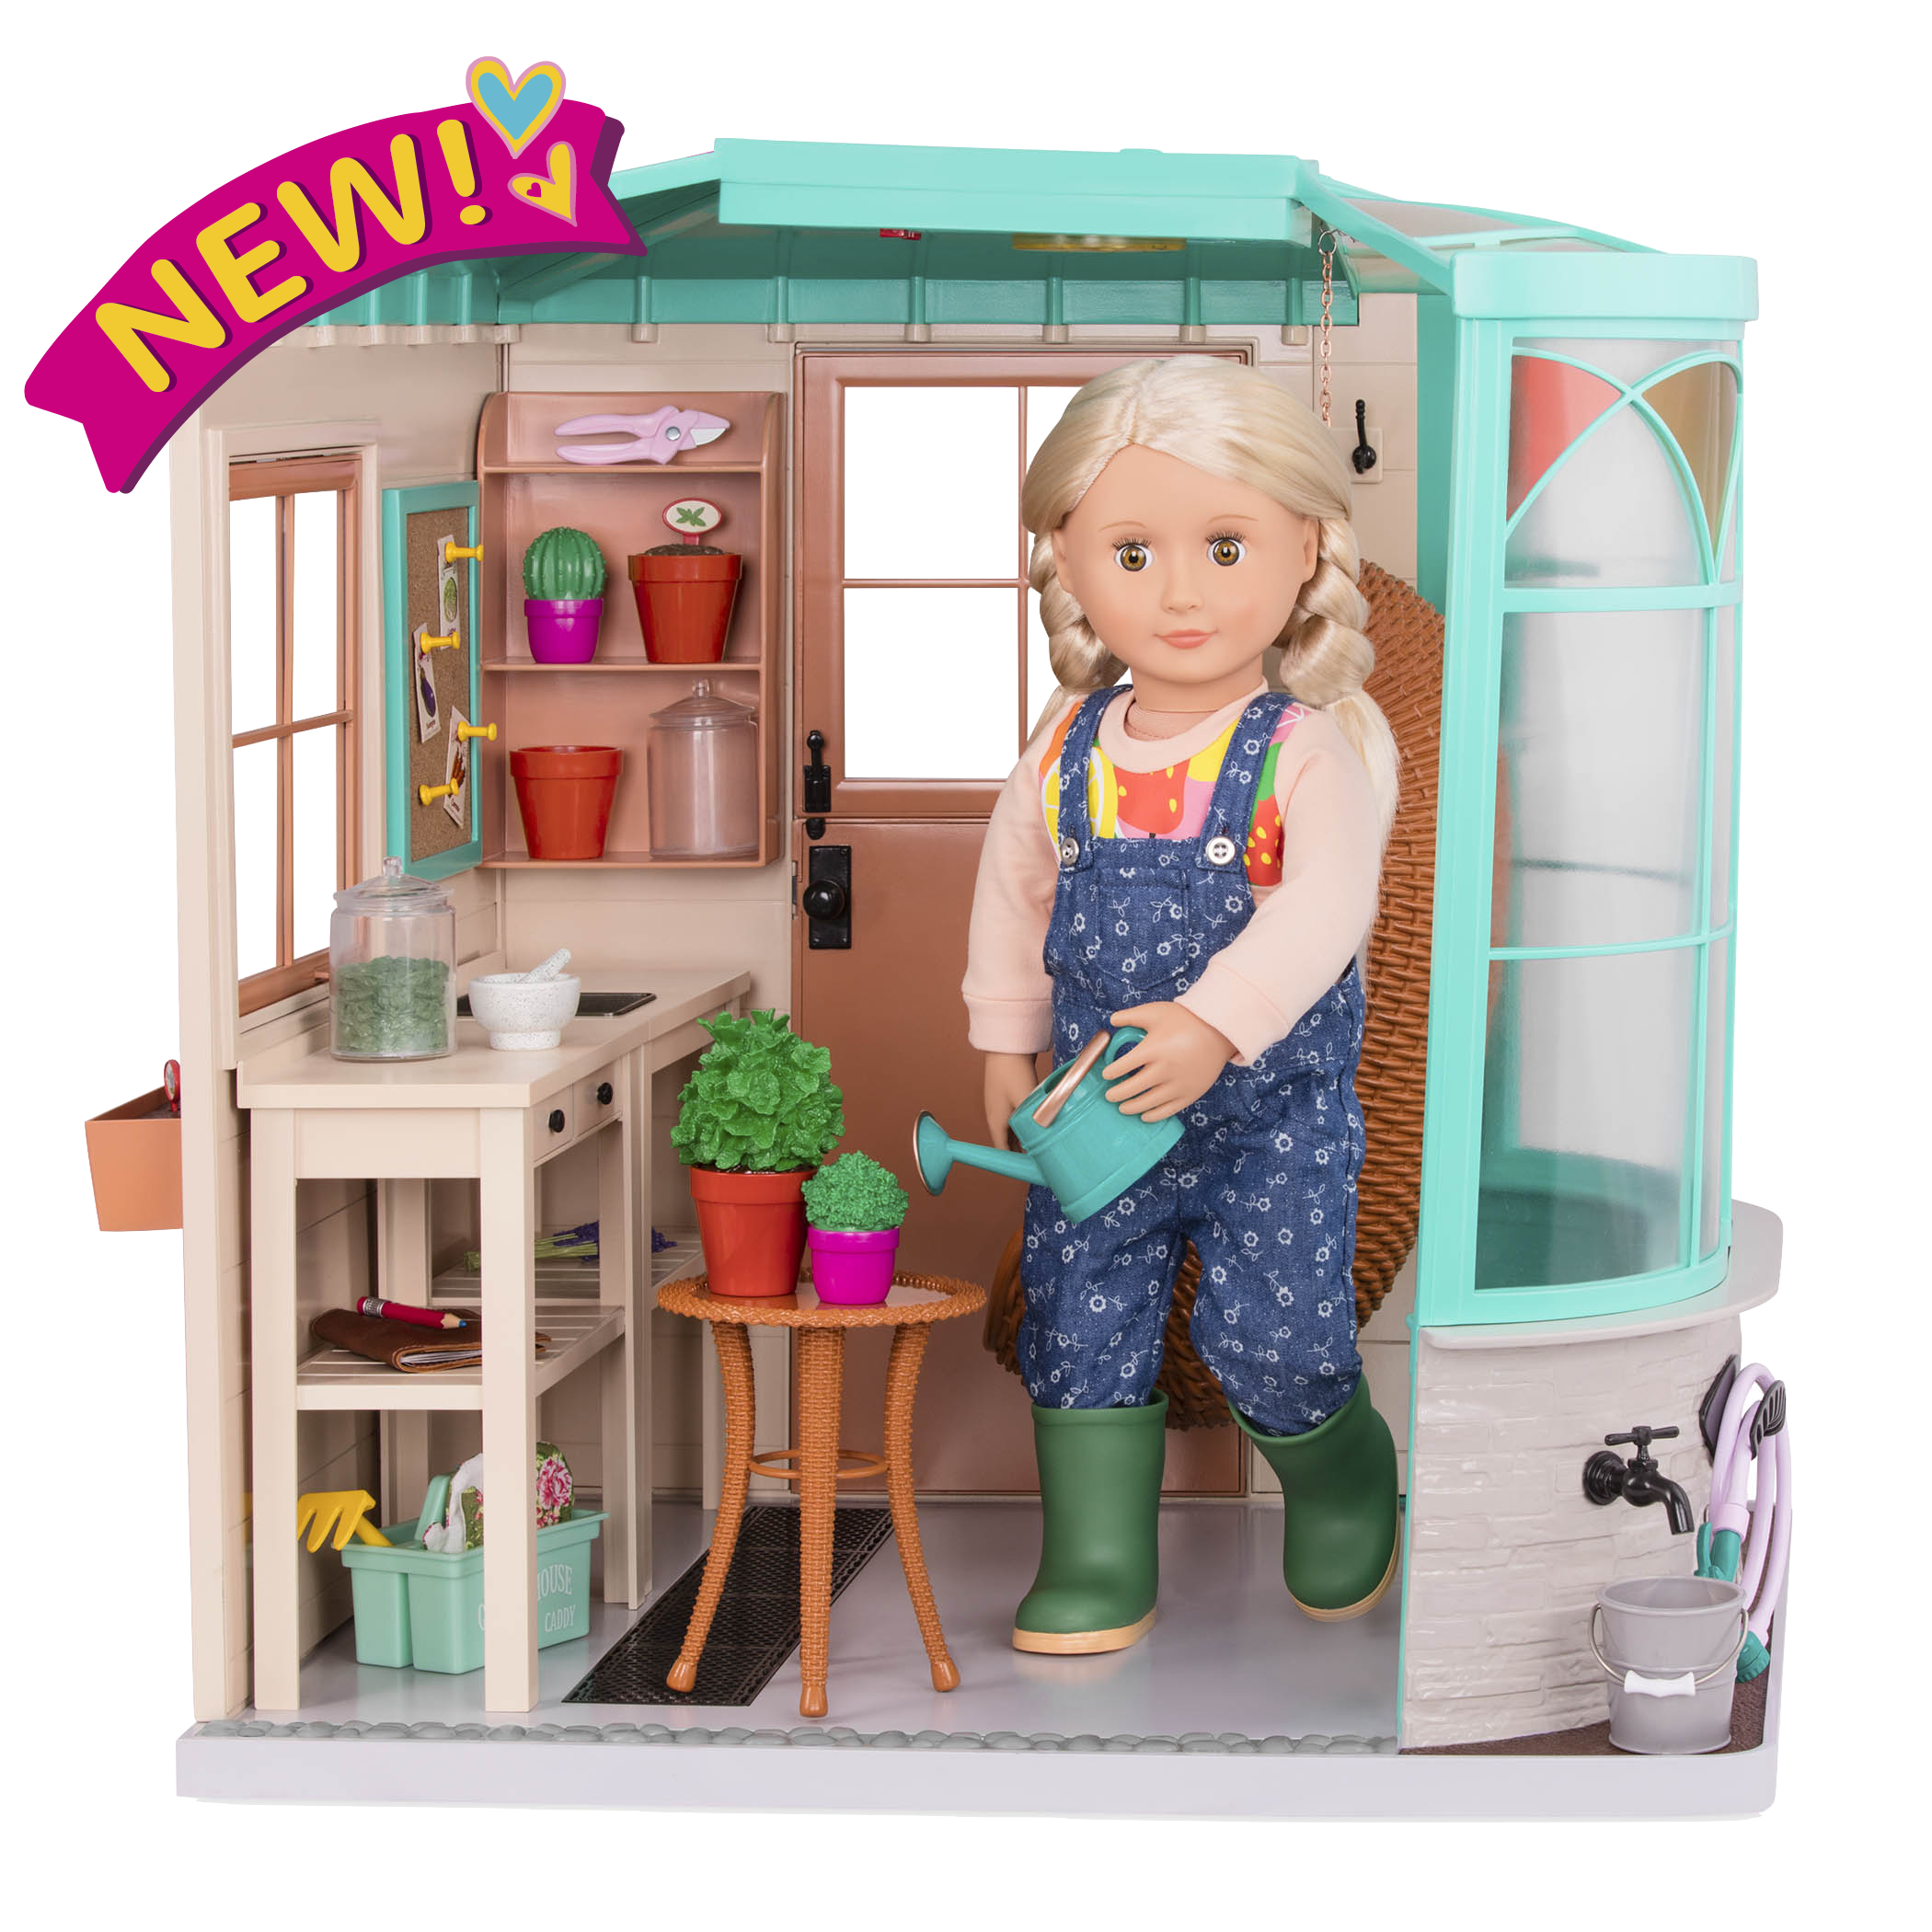 Room to Grow Greenhouse Playset for 18-inch Dolls